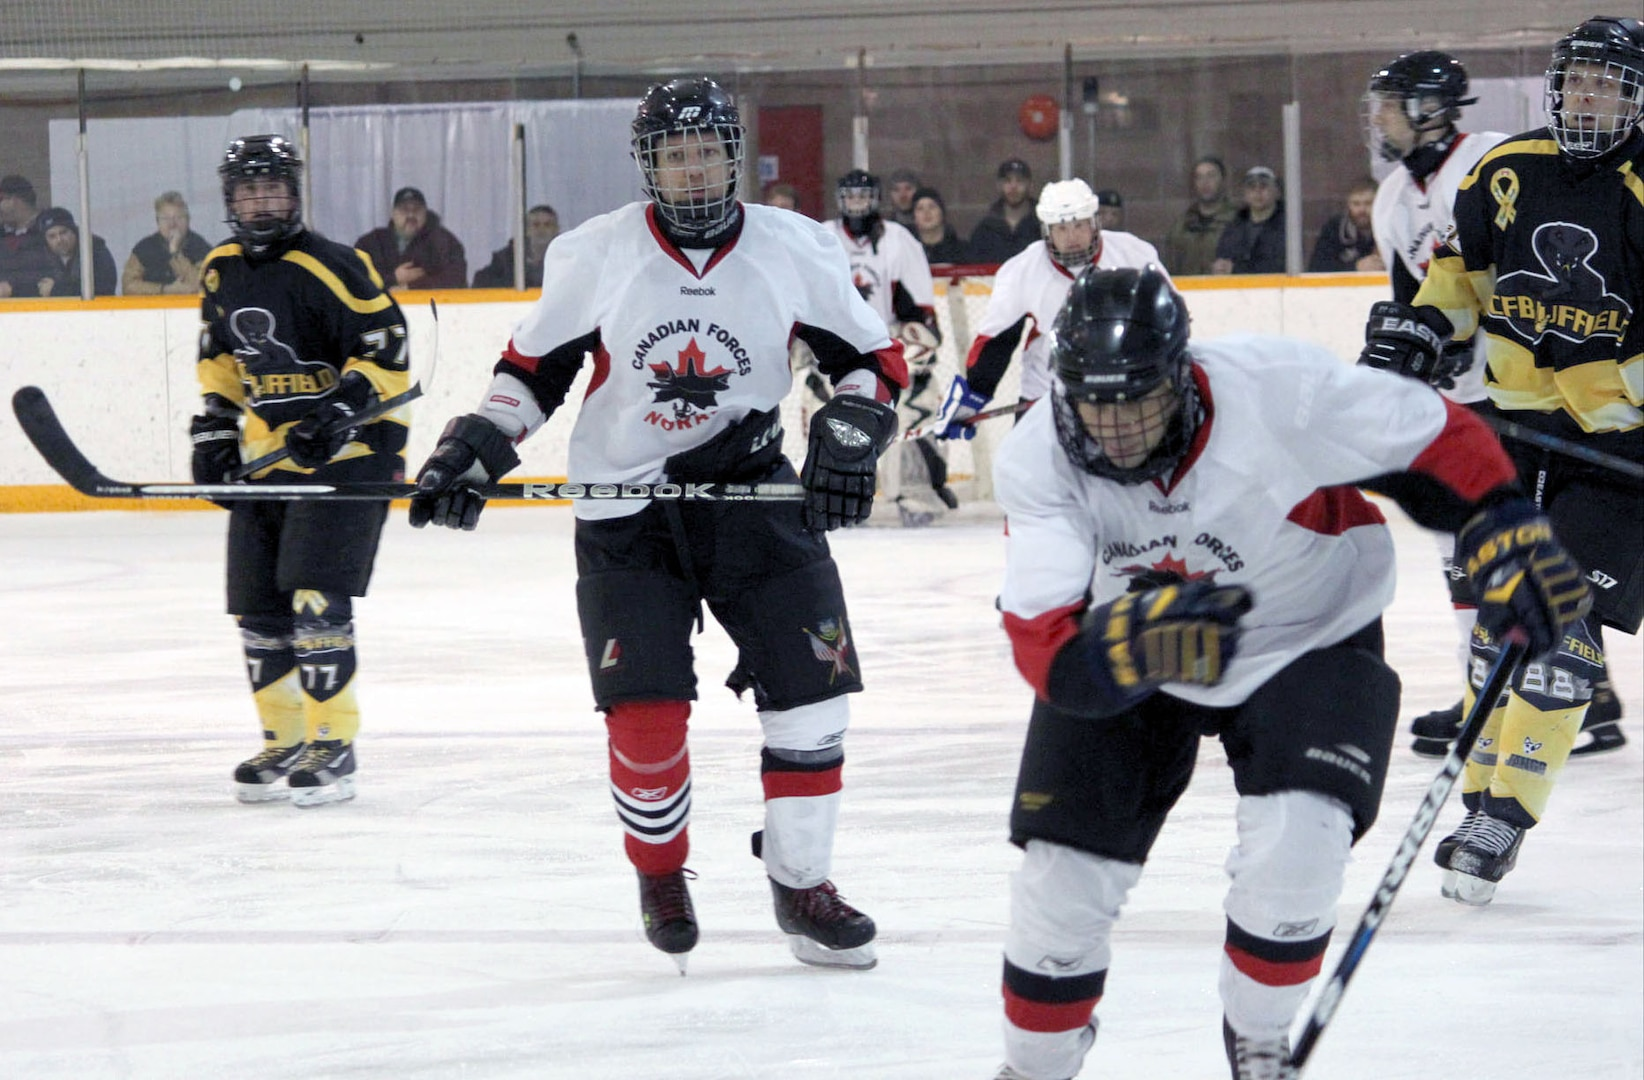 CANADIAN FORCES BASE SUFFIELD, Canada - NORAD's hockey team beat Canadian Forces Base Suffield 7-1 in the final game of the 2013 Annual Canadian Forces Prairie Region Small Base Hockey Championship Feb. 7. The NORAD team, drawing from units across North America, beat the rival team from Suffield in front of a packed house on Suffield's own ice.   (Courtesy photo)